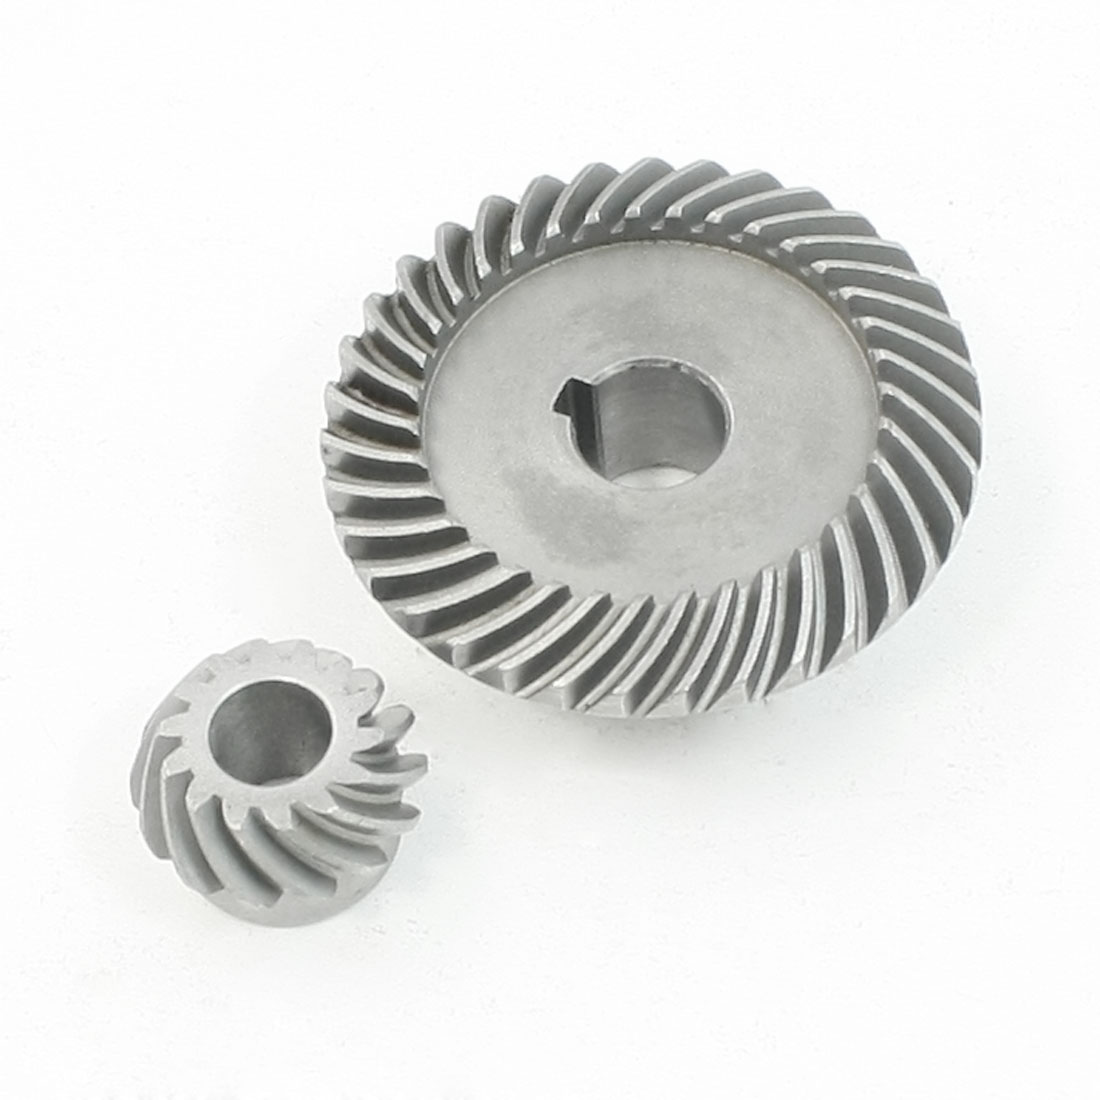 Electric Angle Grinder Spare Part Spiral Bevel Gear Pinion Set for LG 100